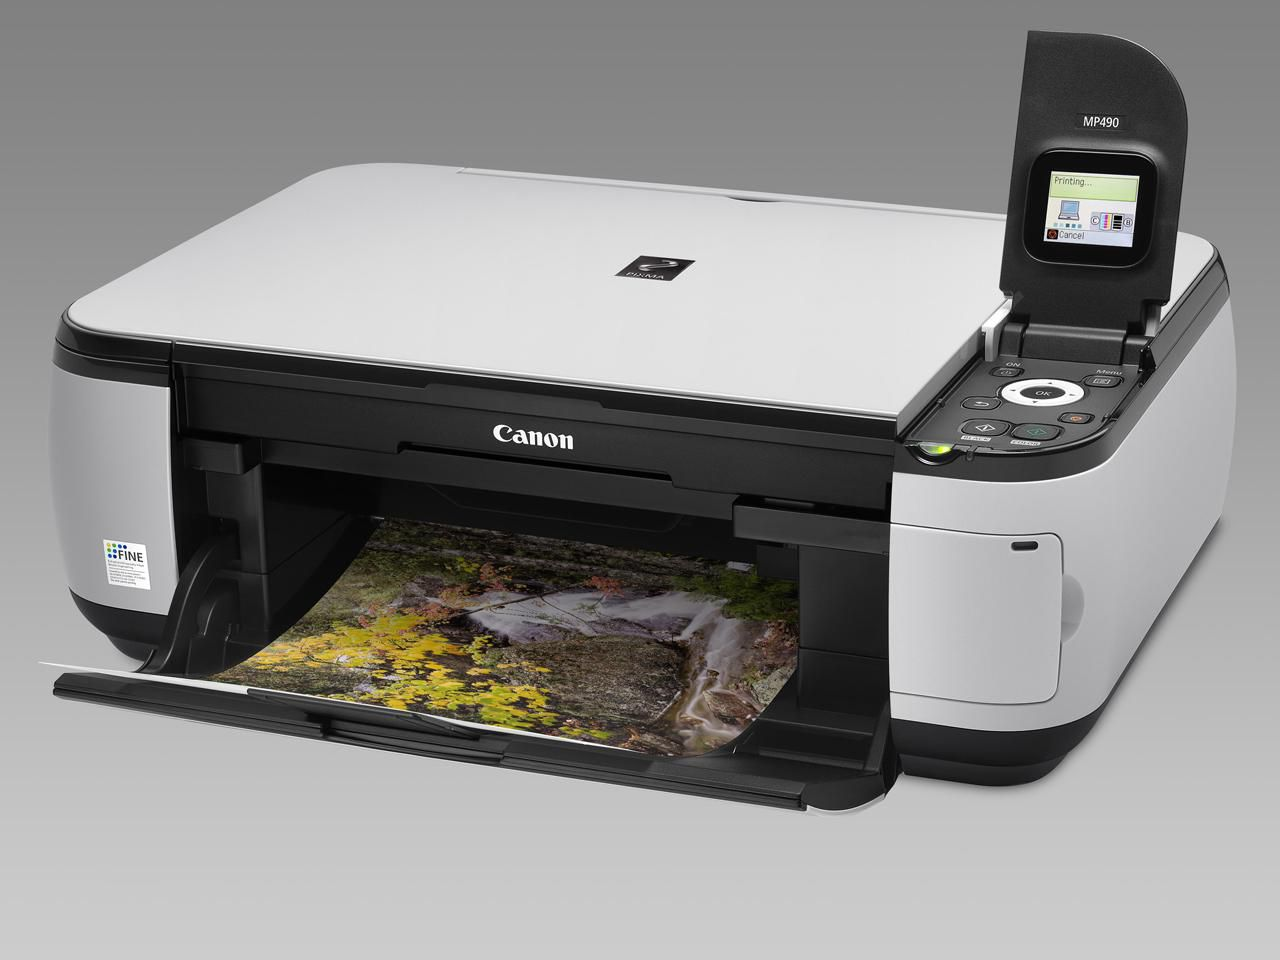 Great Photos Canon's Pixma MP490 All-in-One Printer